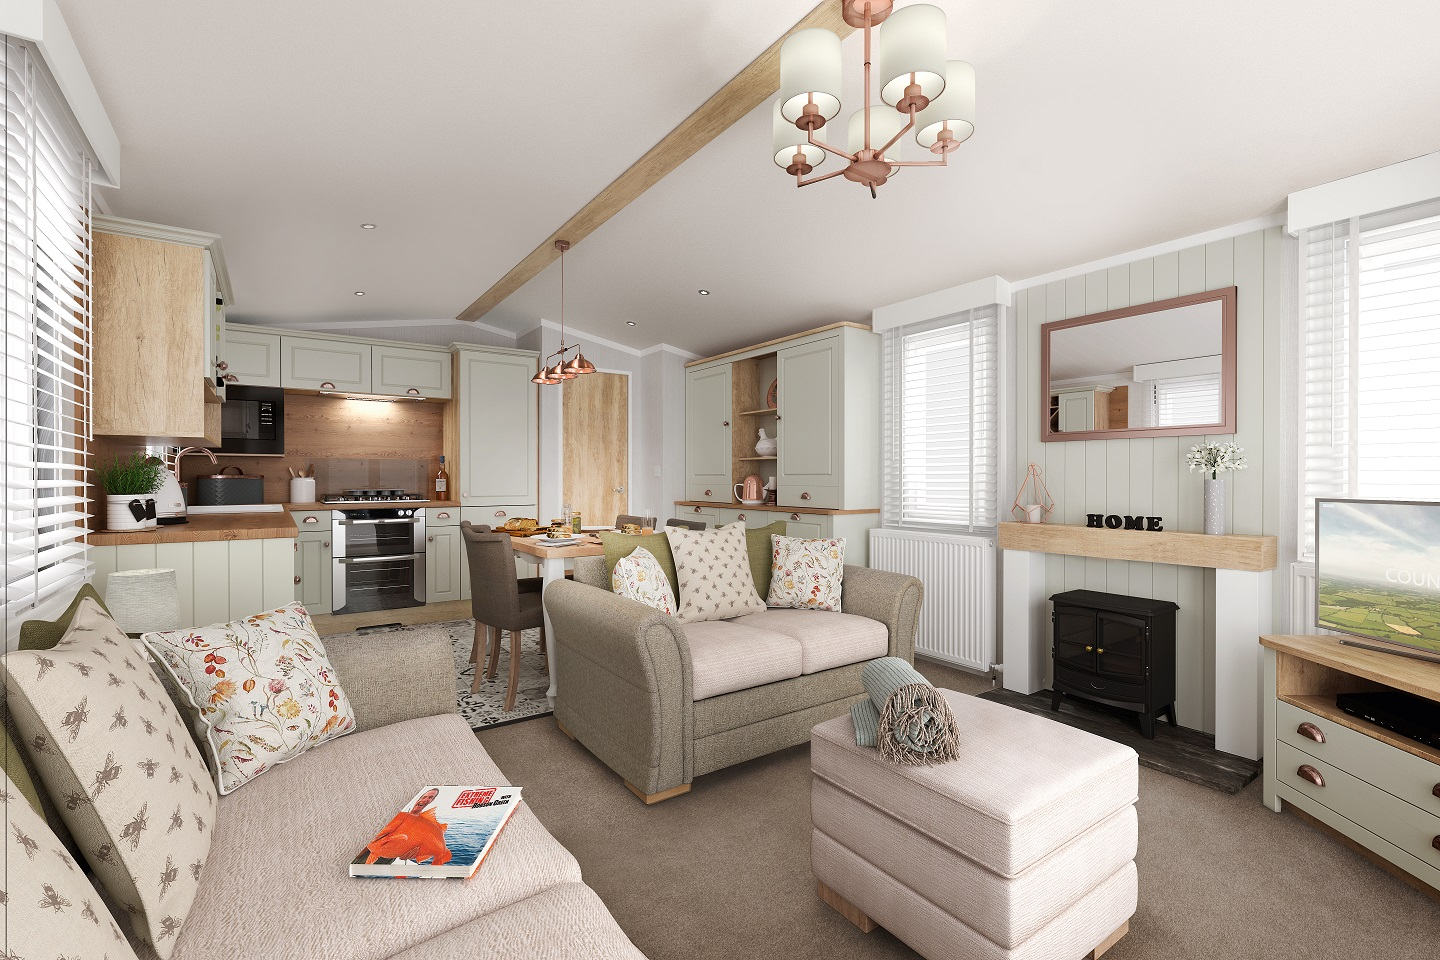 Swift Vendee: New Static Caravans and Holiday Homes for Sale, Clifton, Morpeth Large Image 2